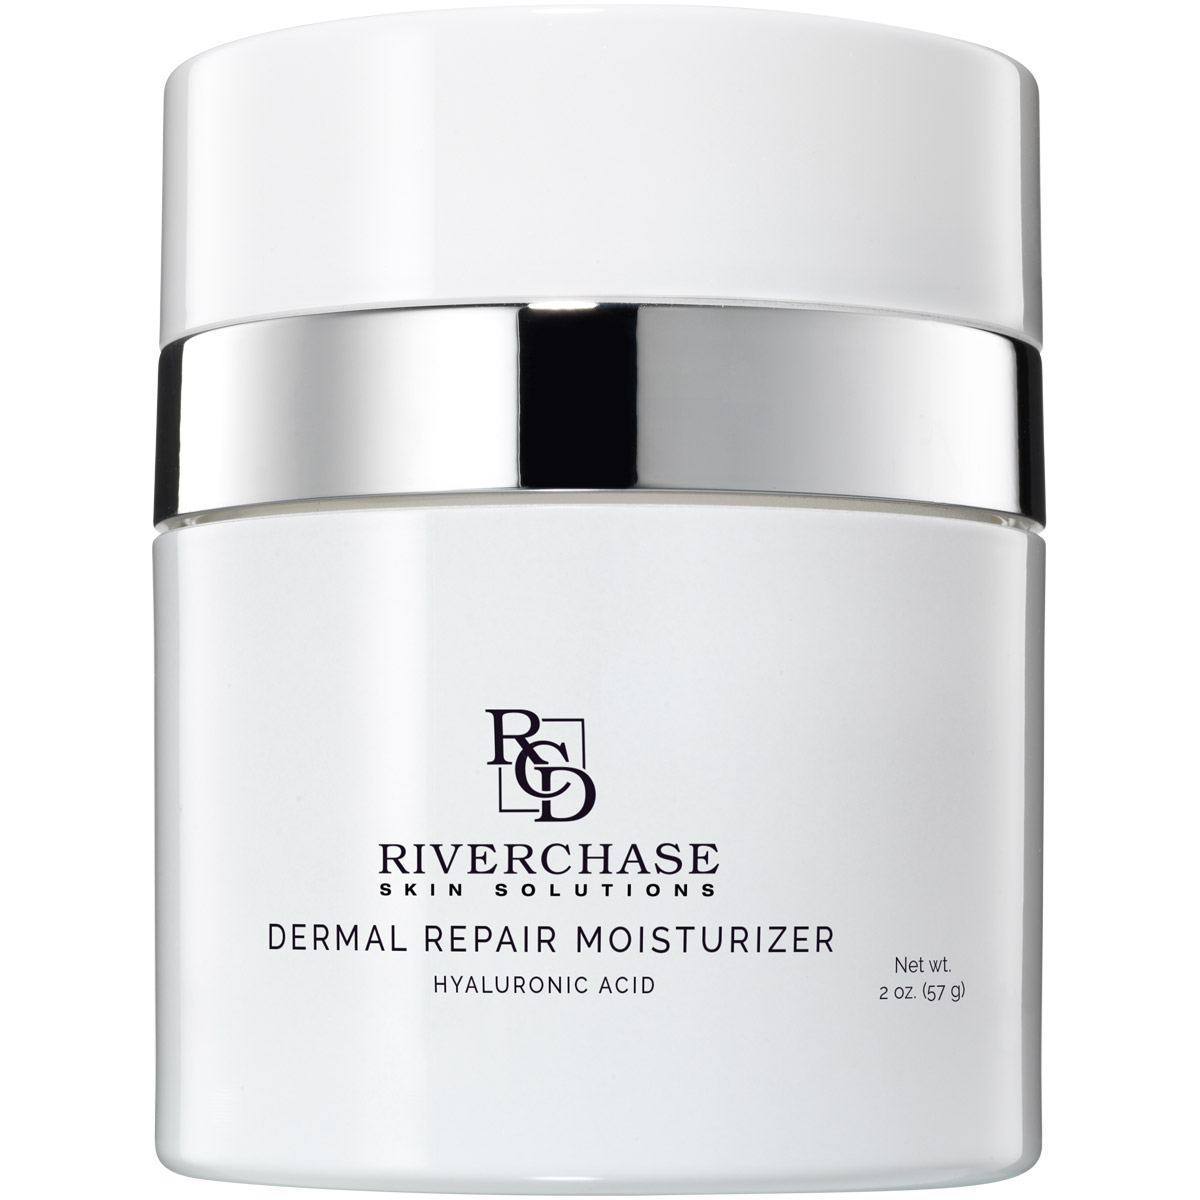 A moisture-boosting, decadently rich night cream